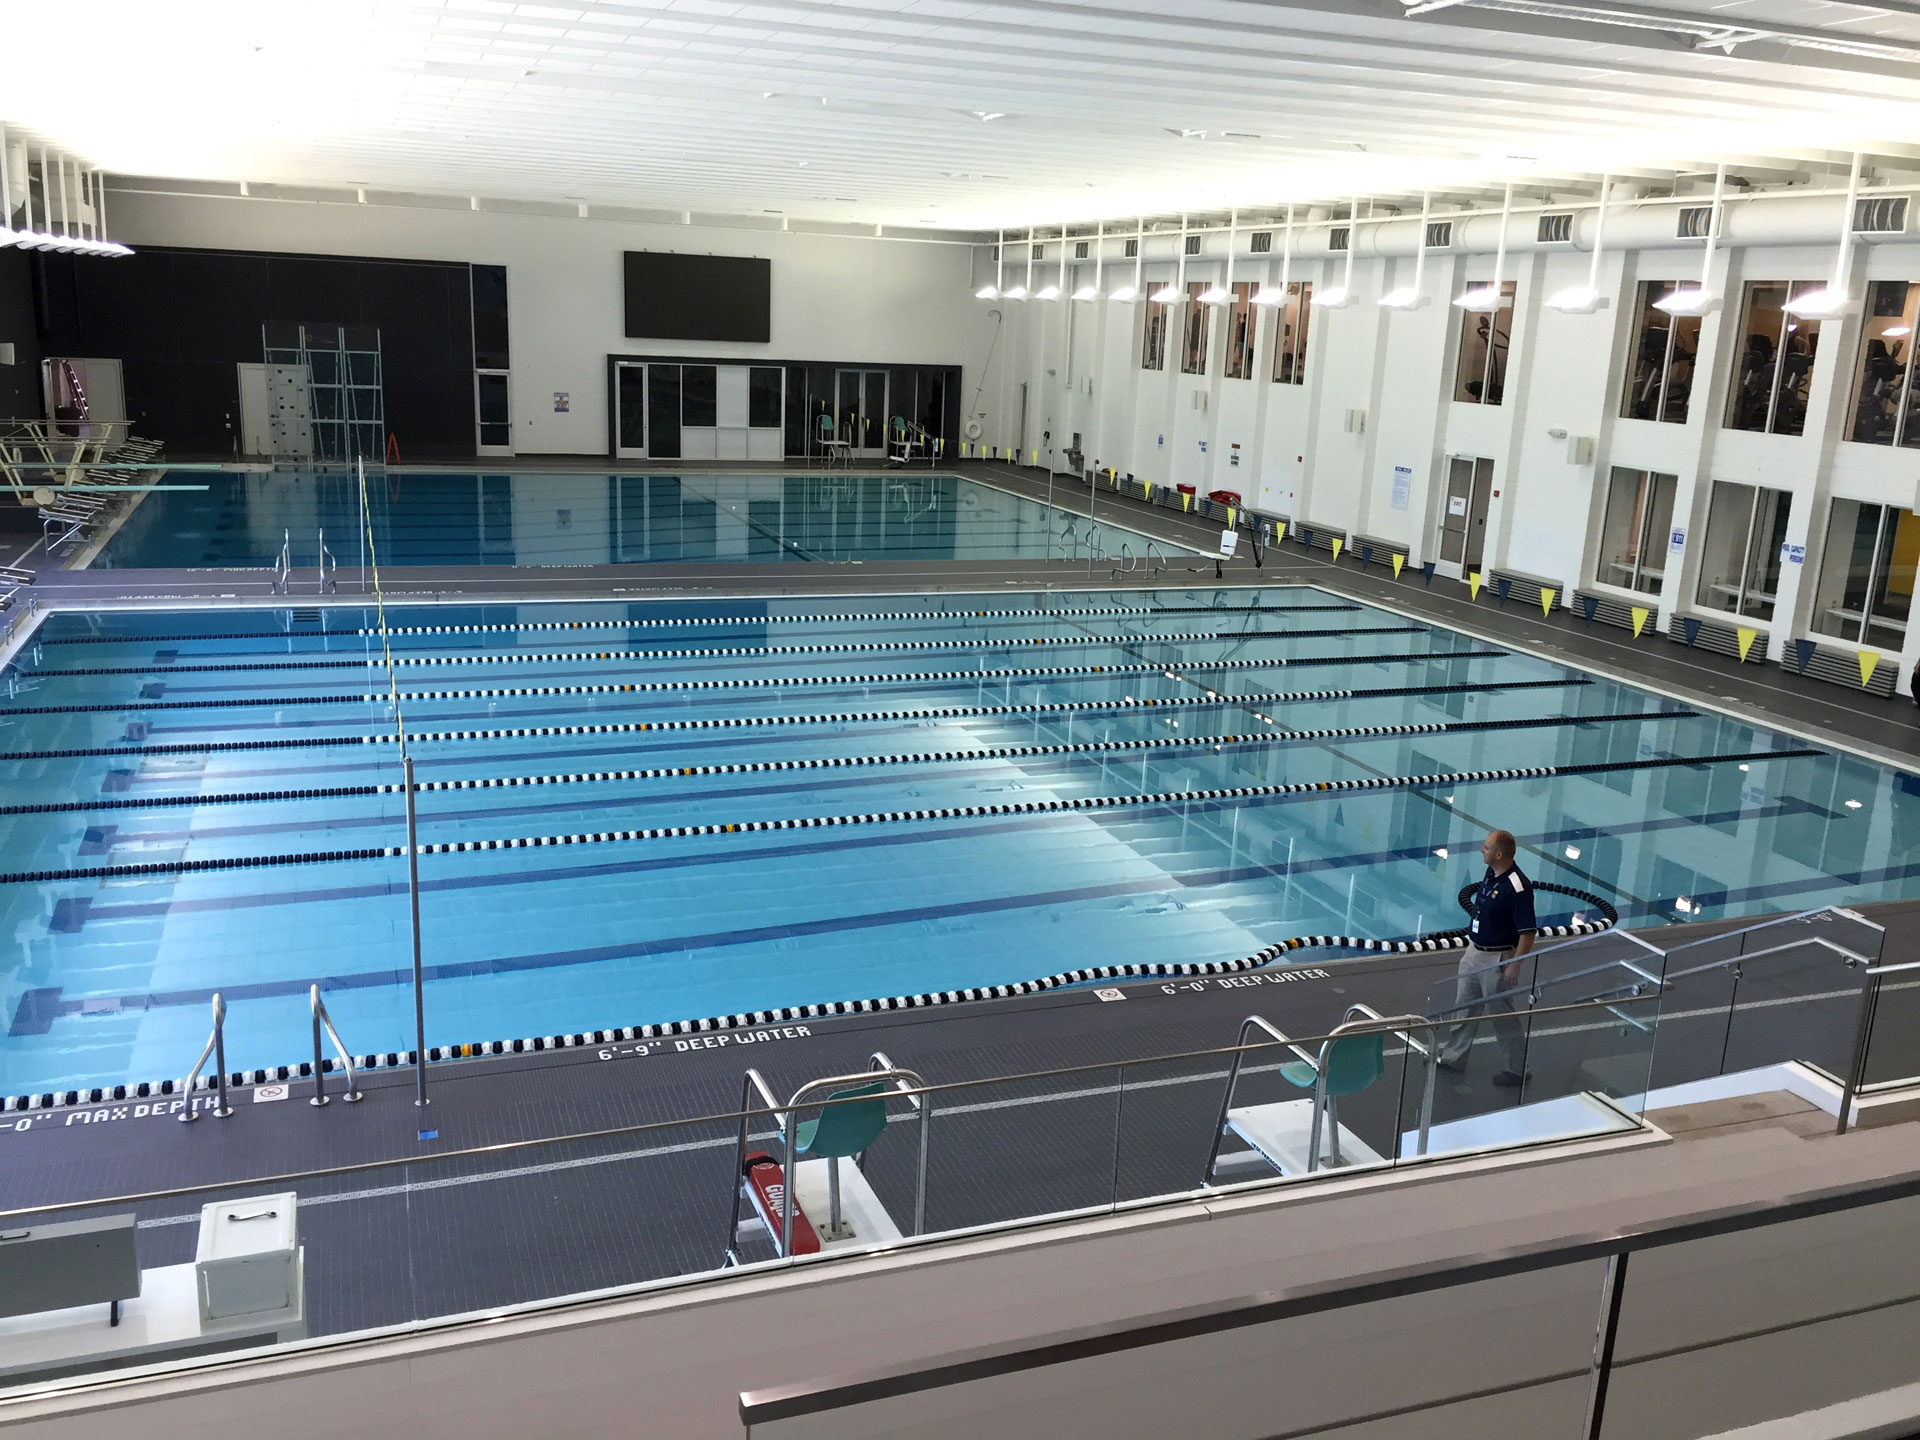 Eden Prairie Community Center Aquatic Center